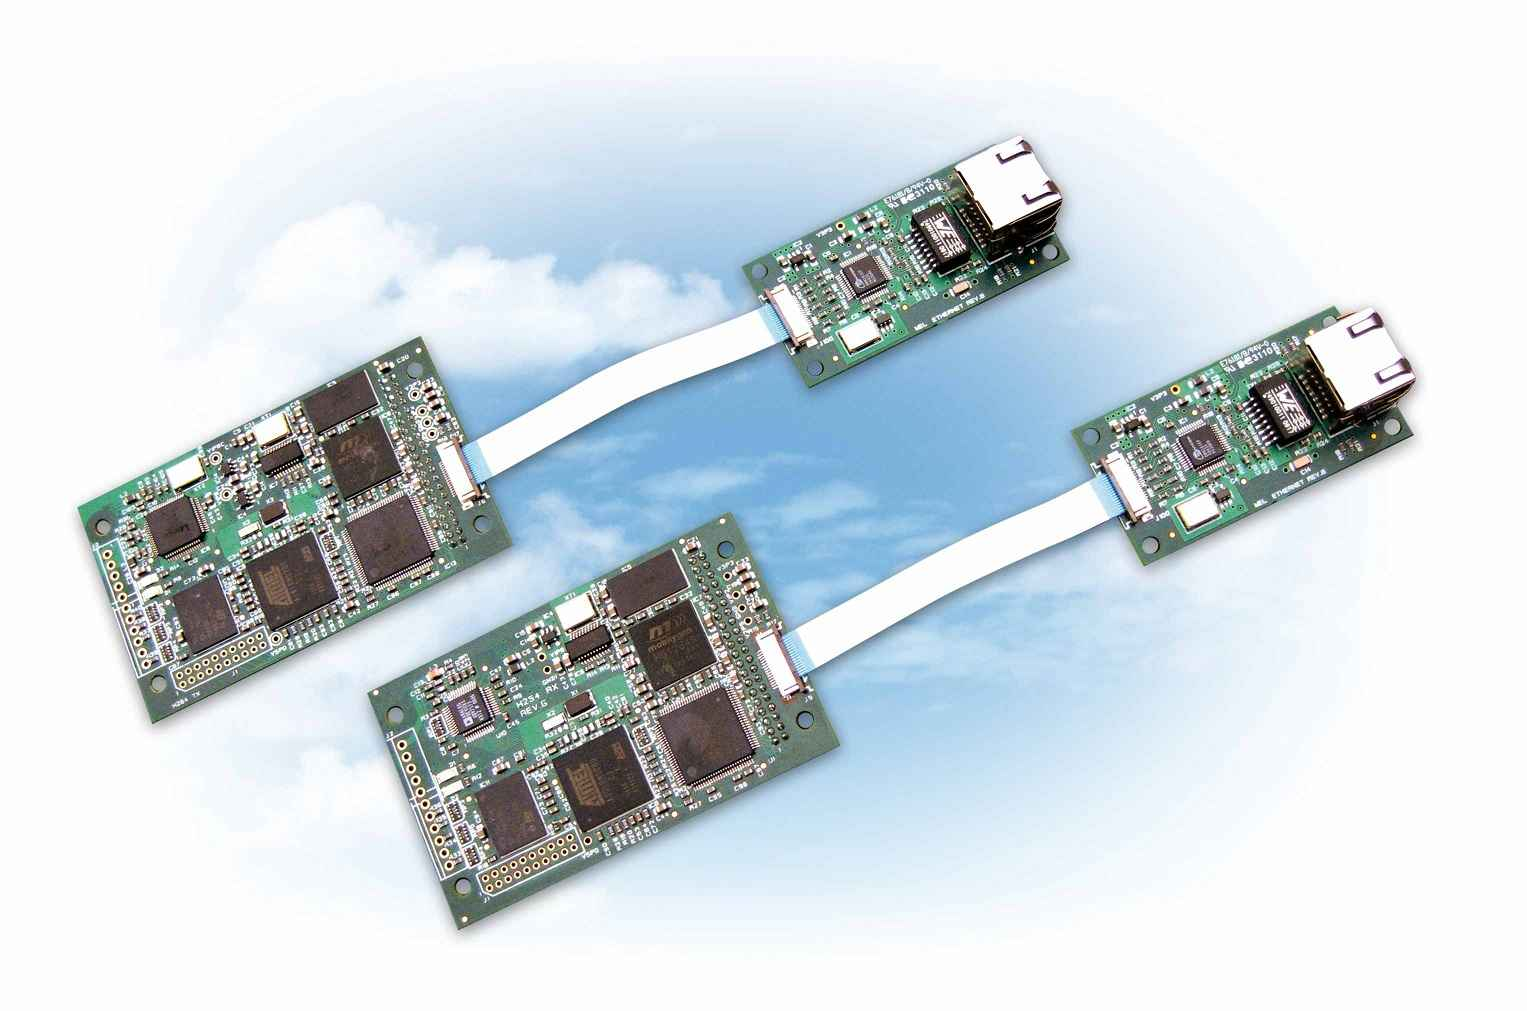 New H264 IP decoder and encoder from MEL Secure Systems